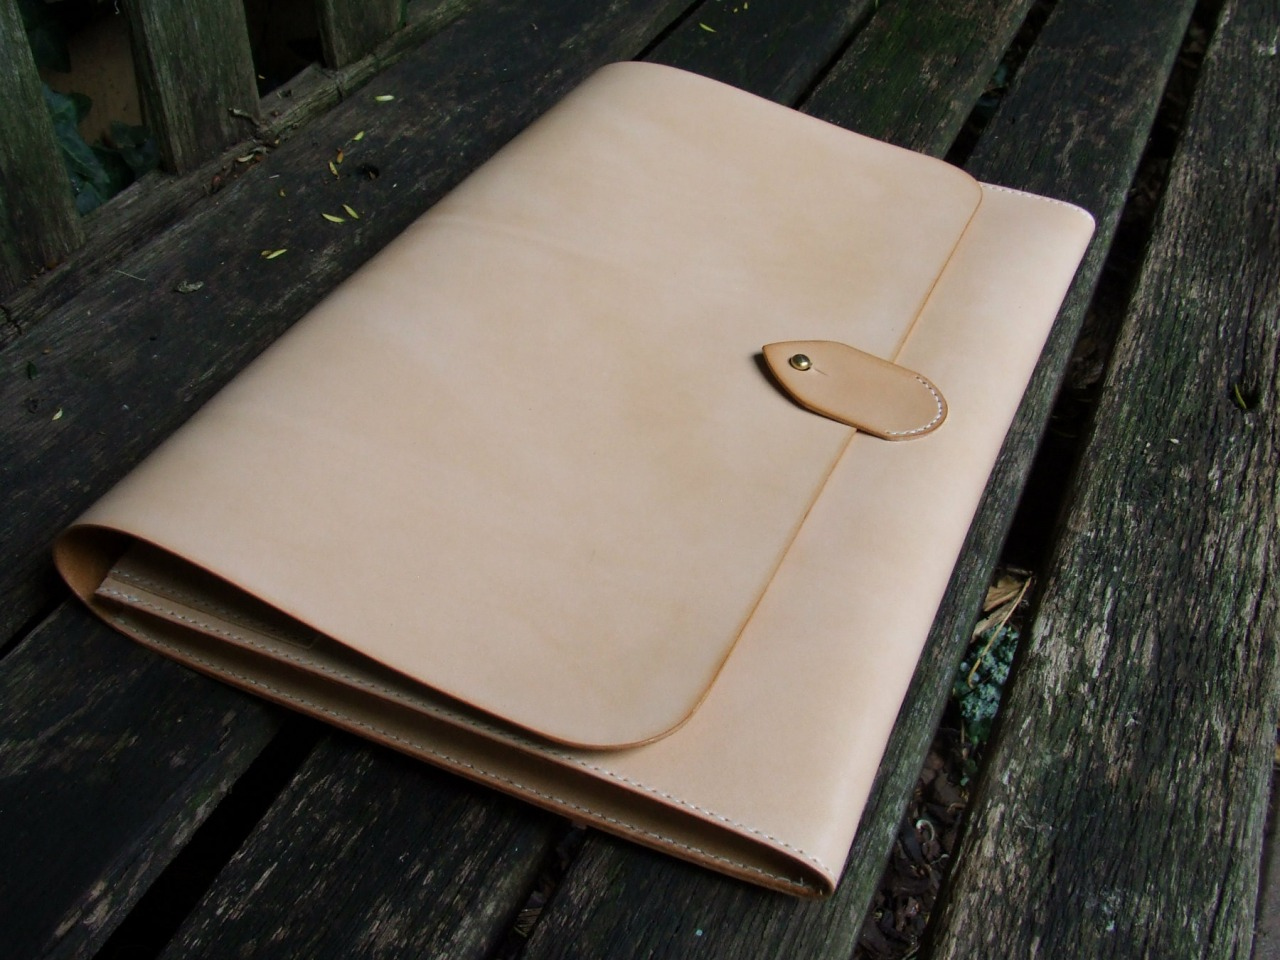 Torstein's document Folio